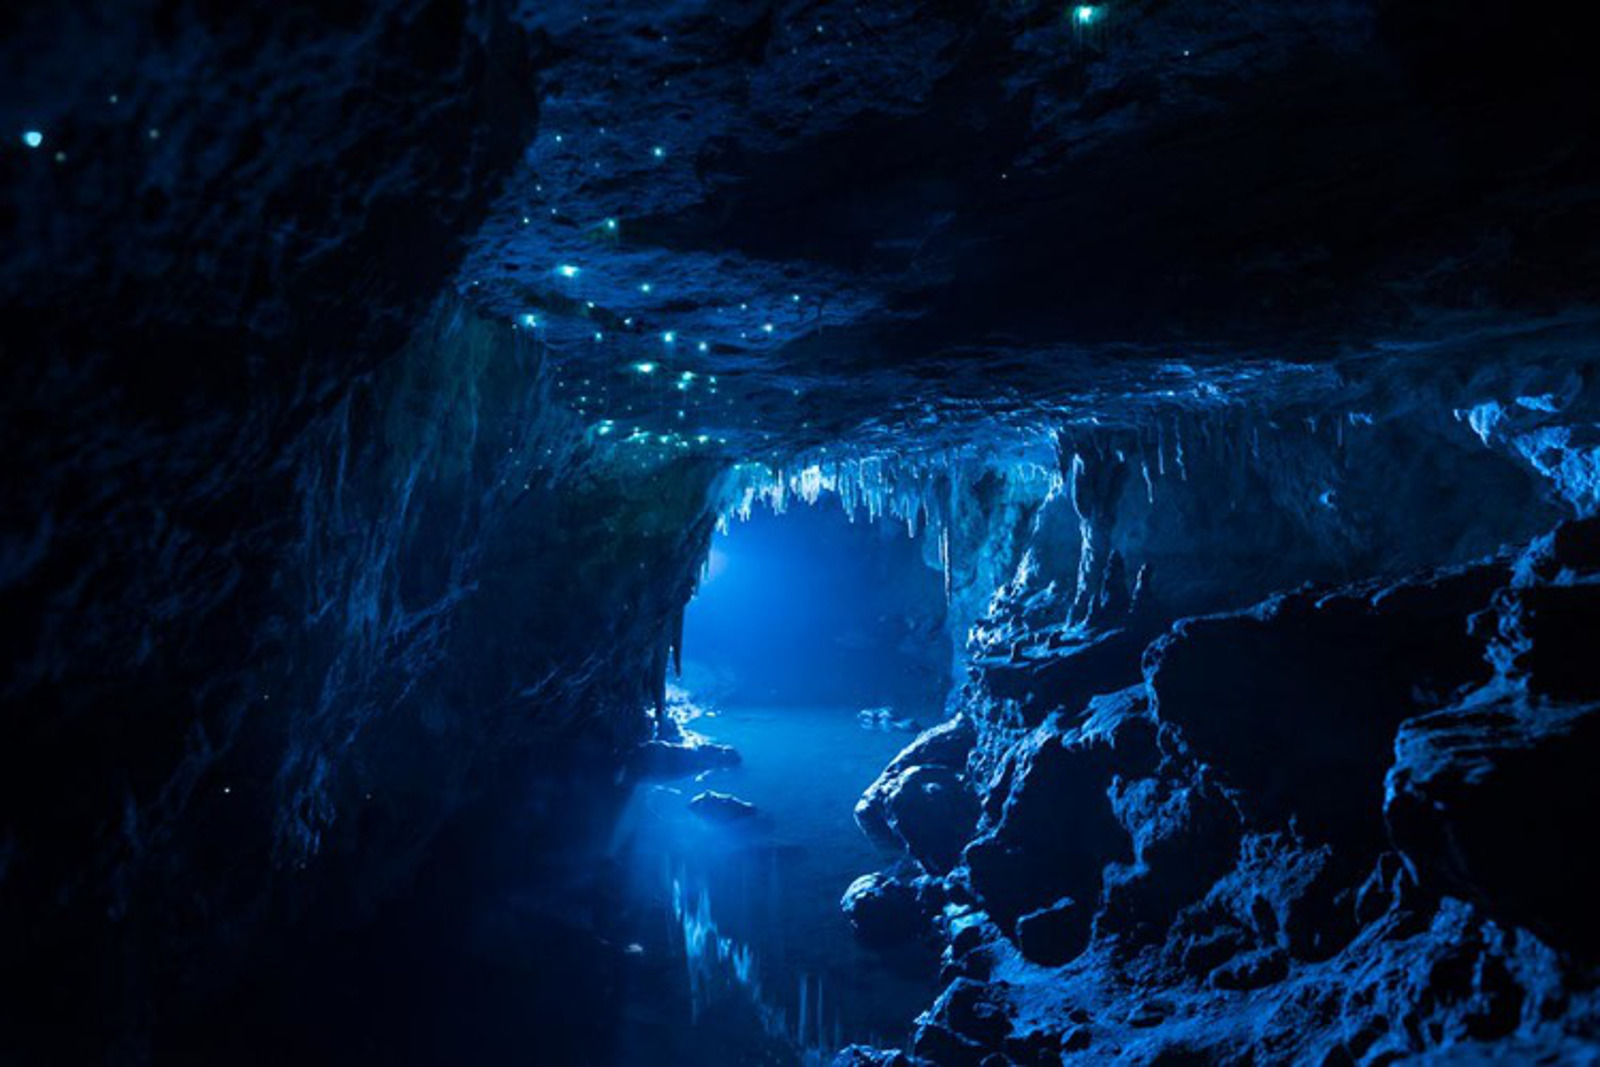 Breathtaking Photographs of Bioluminescent Caves Will Inspire You to Stand Up for Nature